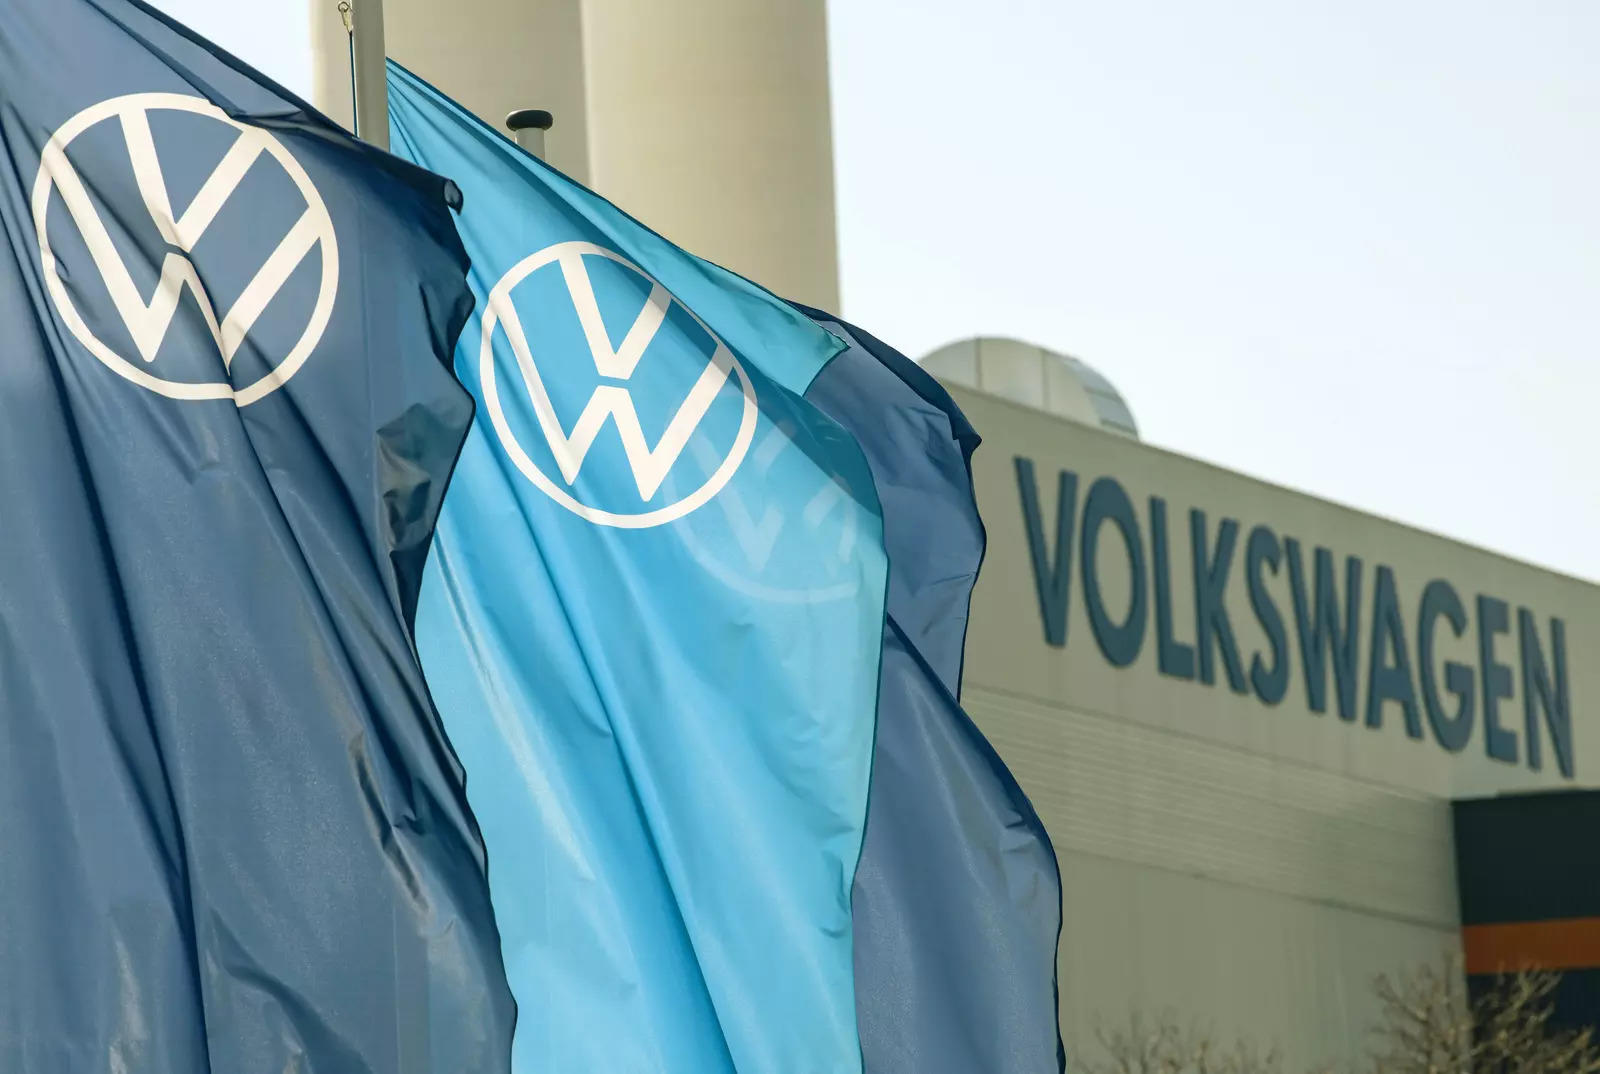 Volkswagen, the world's second-largest carmaker, expects to double electric vehicle deliveries and boost profits for its core brand this year after stepping up its switch to fully electric vehicles in a bid to catch up with Tesla.